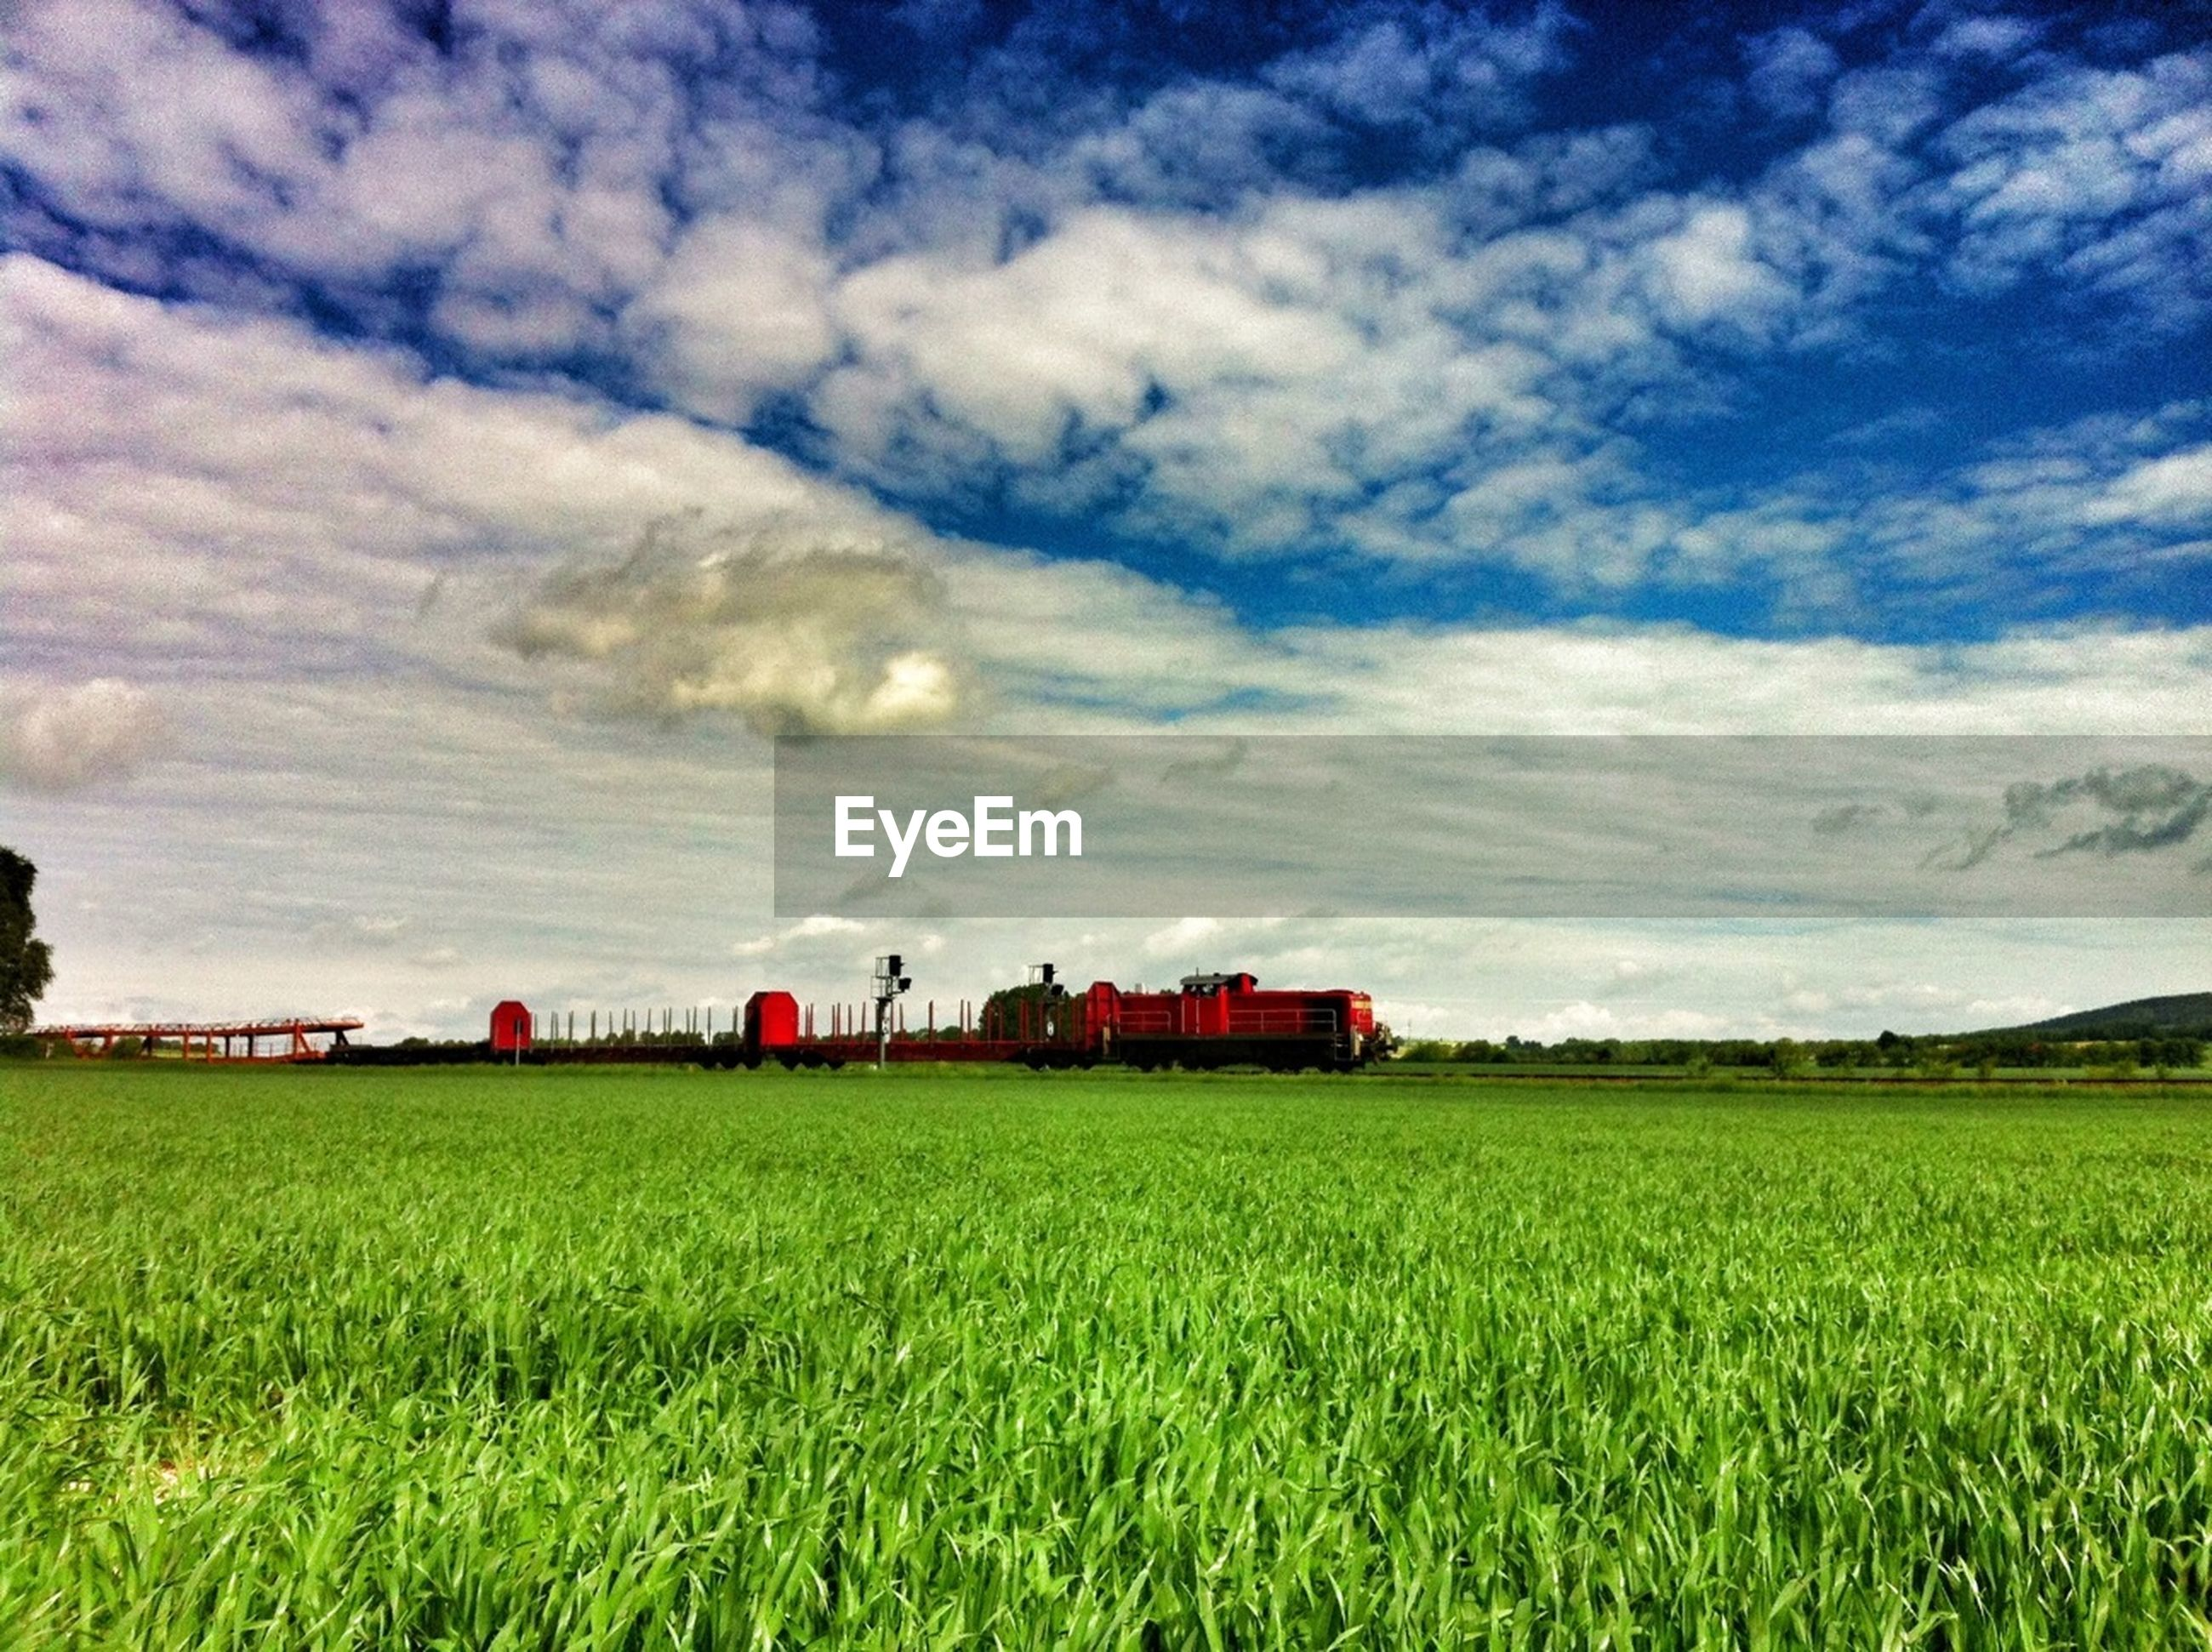 Freight train by grassy field against cloudy sky